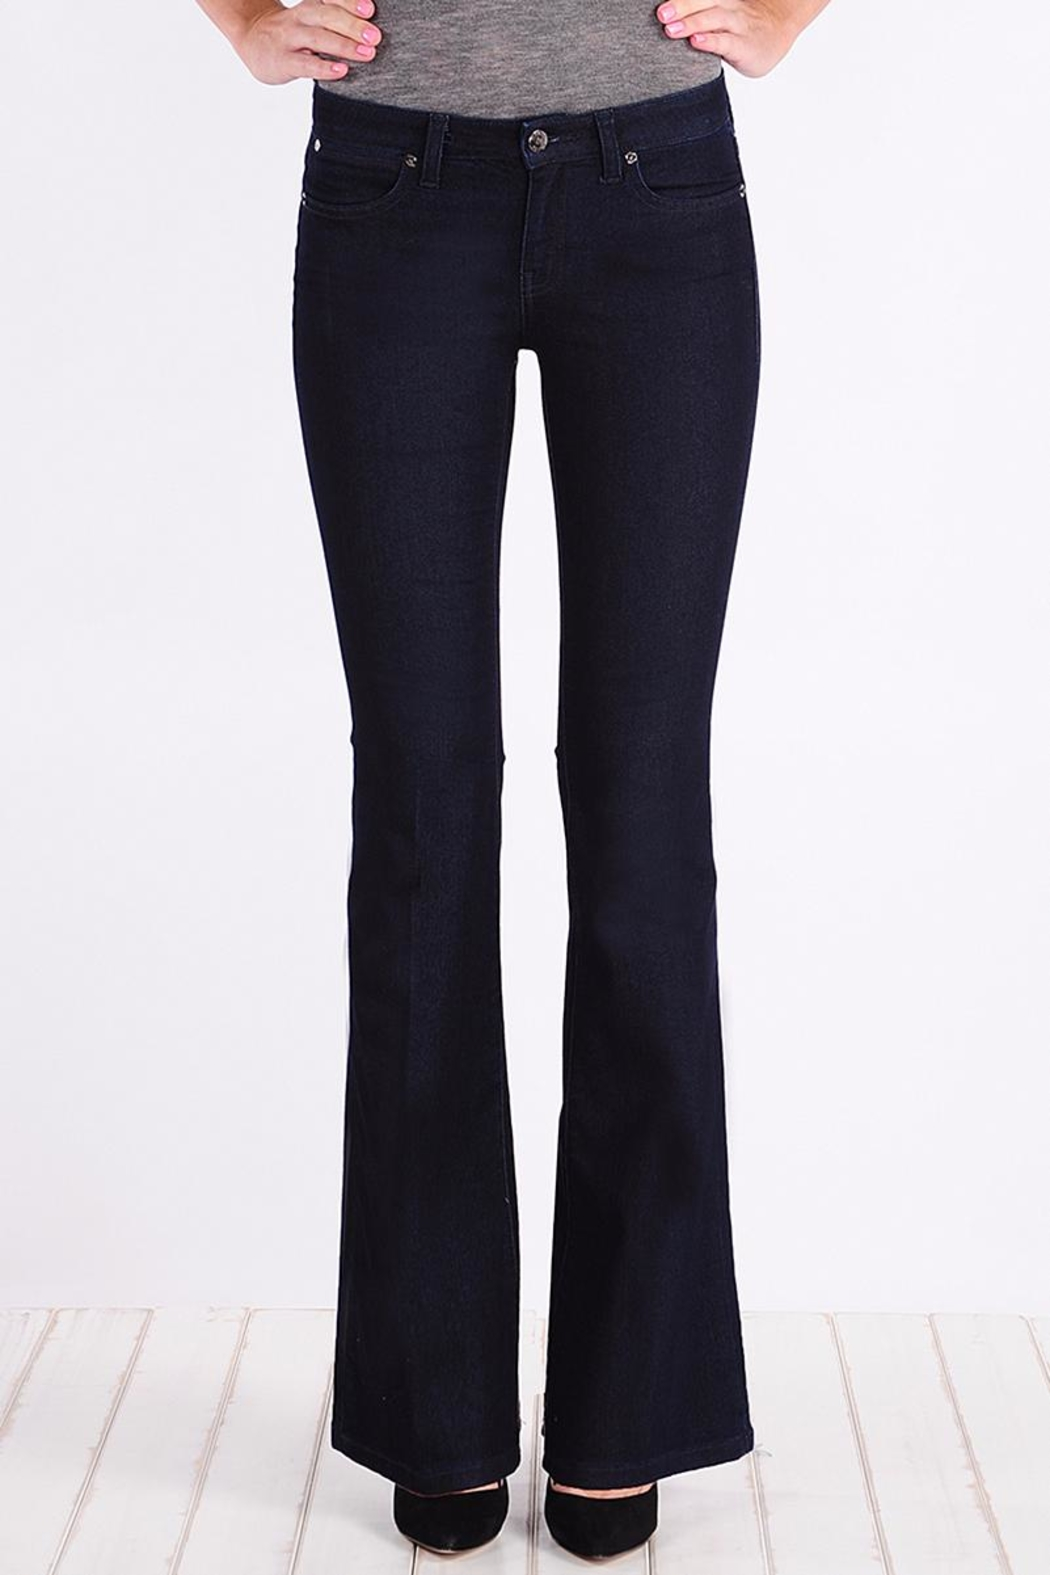 Henry & Belle Lila Flare Jeans - Main Image